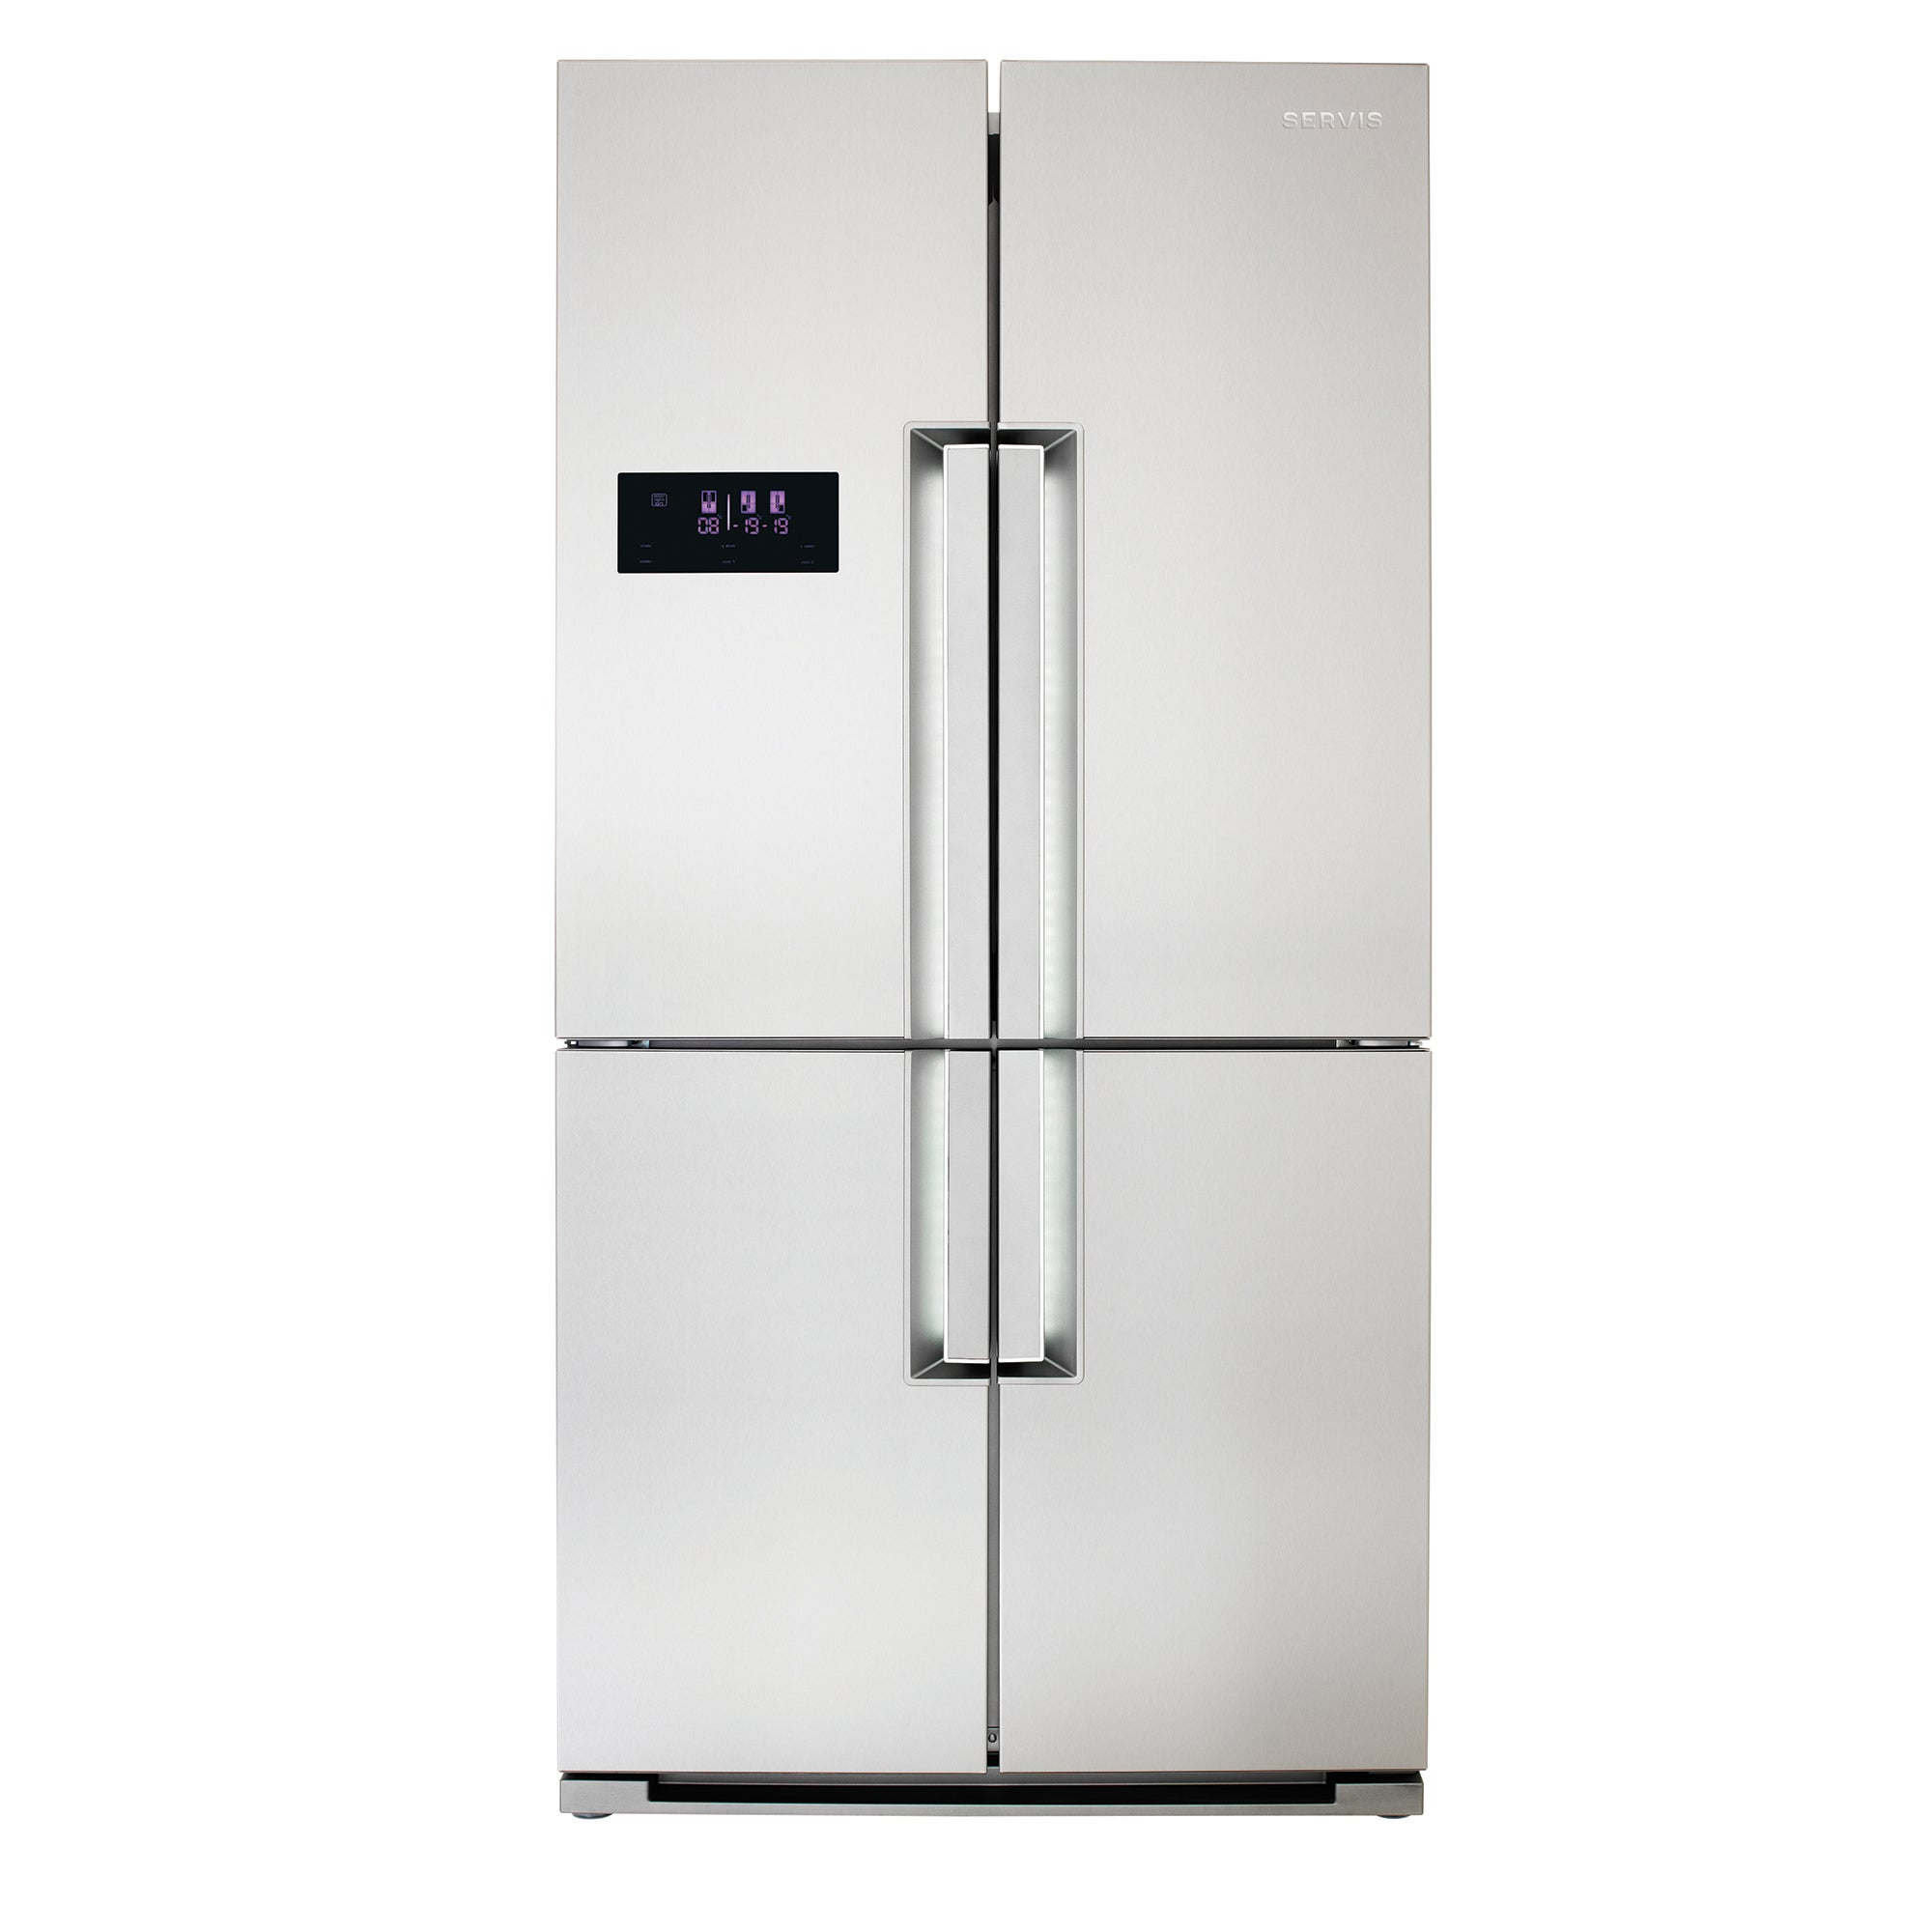 Servis FD91185SS 4 Door American Style Fridge Freezer